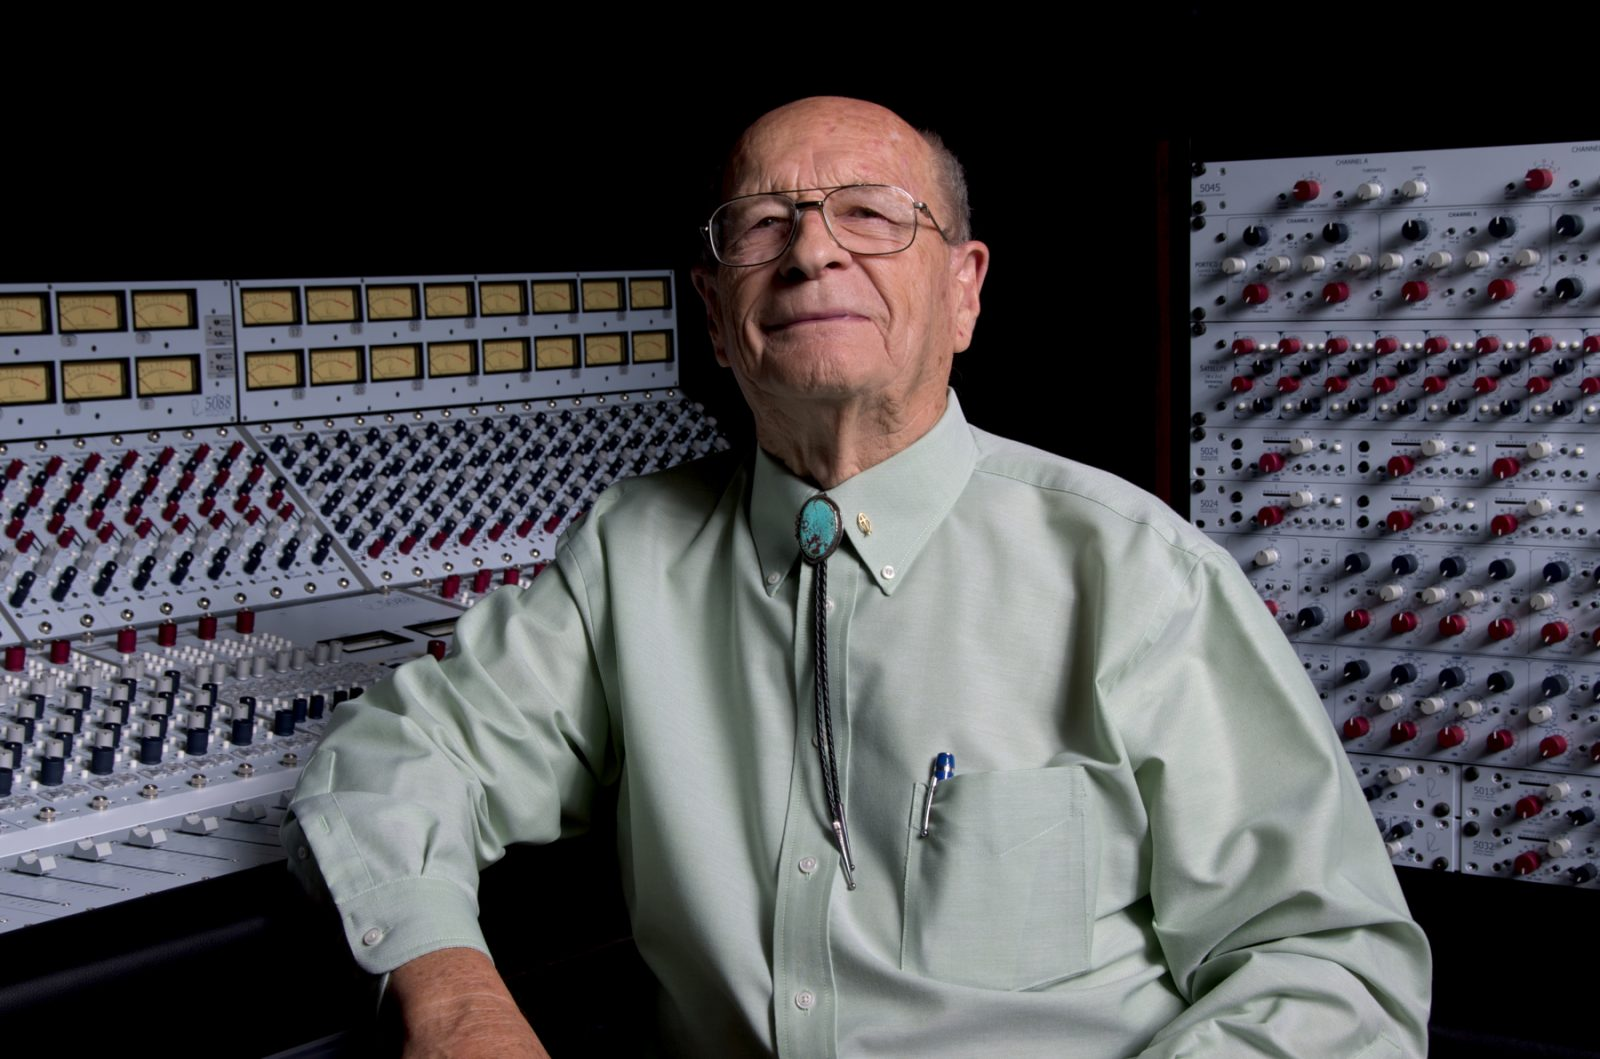 Rupert Neve in front of equipment